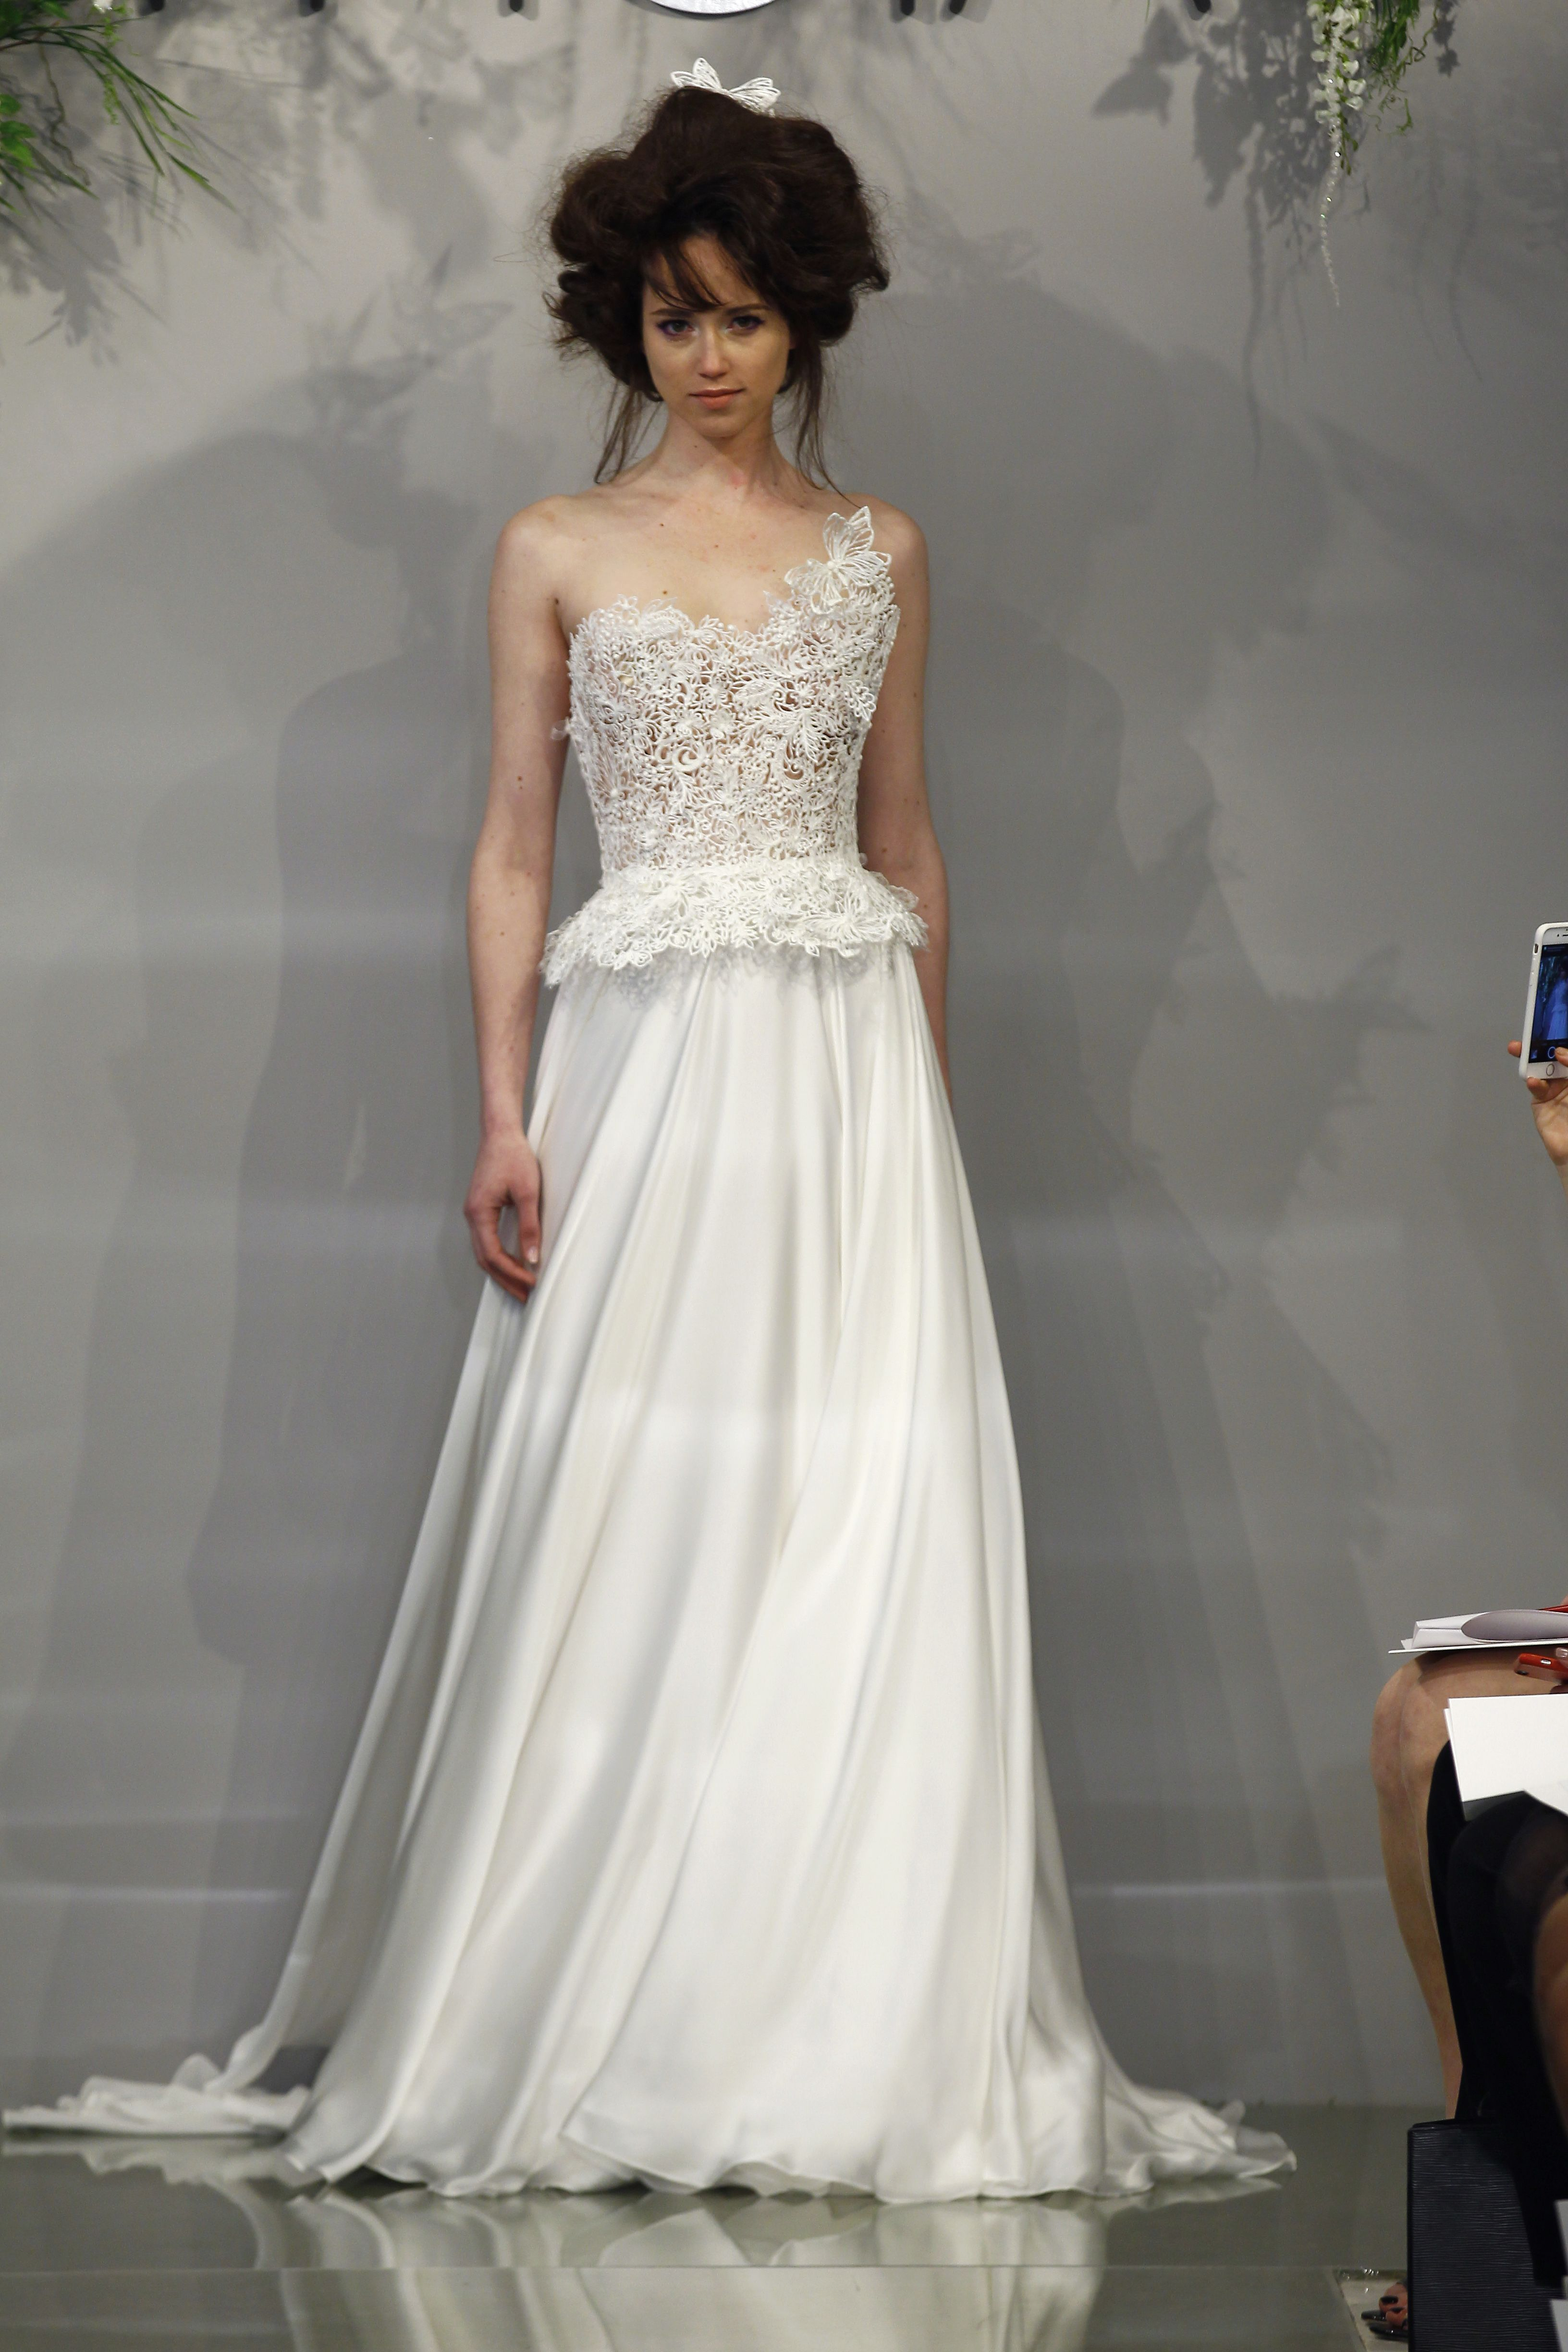 High fashion wedding dress  The Best in Spring Bridal Gowns  Bridal gowns Gowns and Beautiful